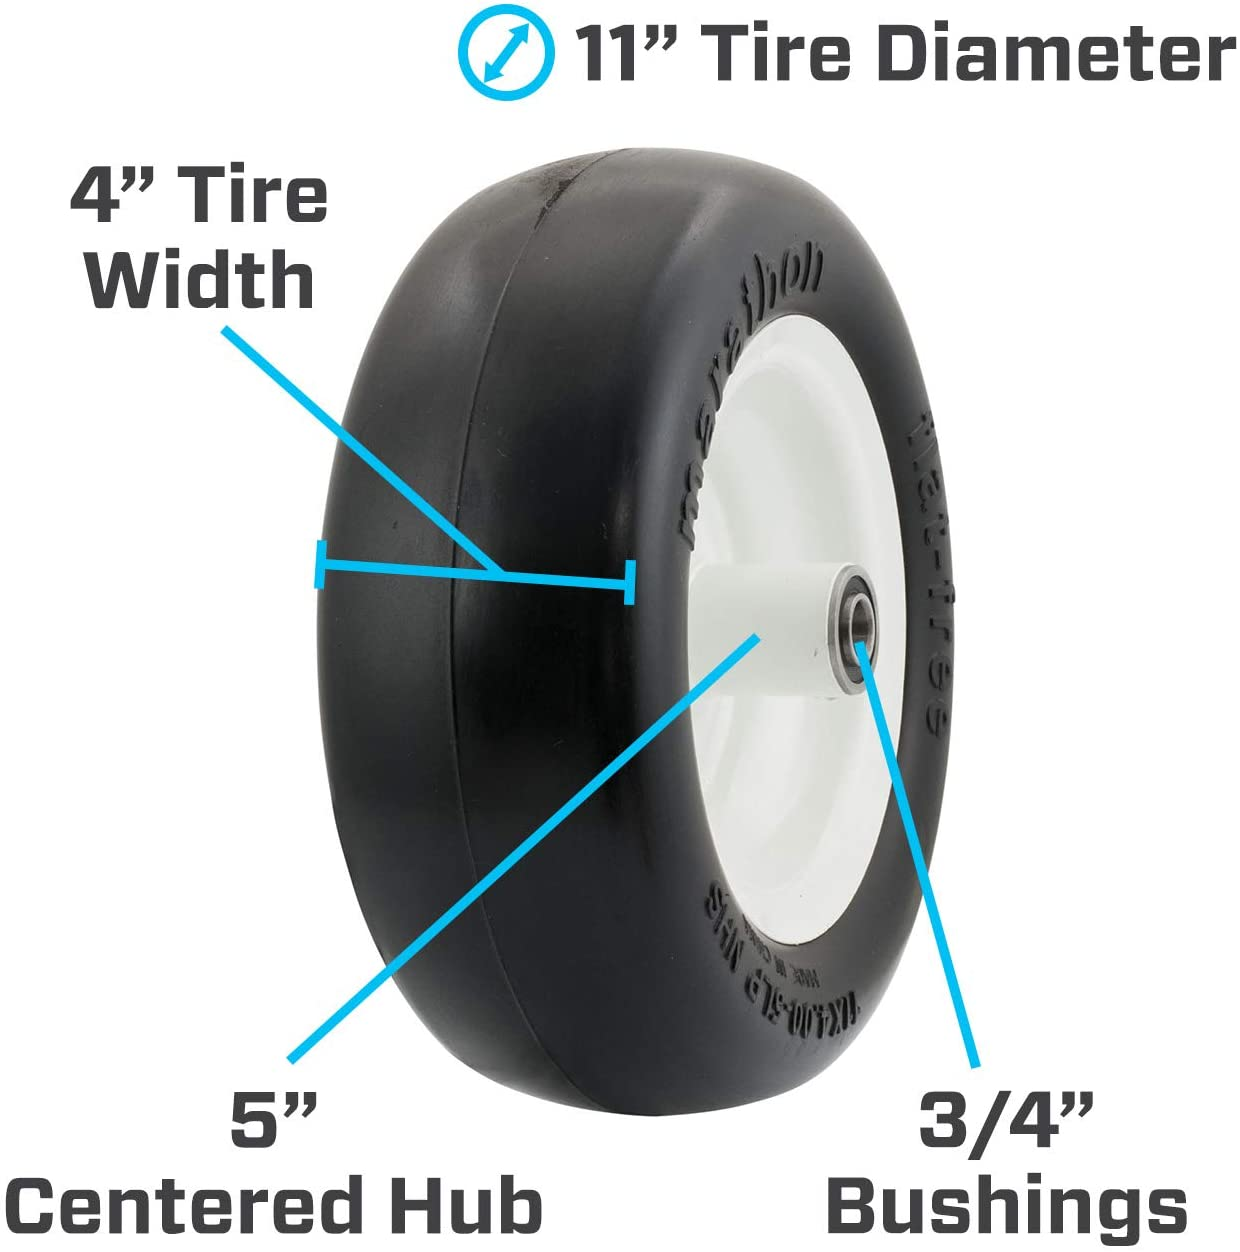 "5 Centered Hub with Grease Fitting Smooth Tread Tire for Zero Turn Mowers 3//4 Bearings LotFancy 11x4.00-5/"" Lawn Mower Tire on Wheel Flat Free"